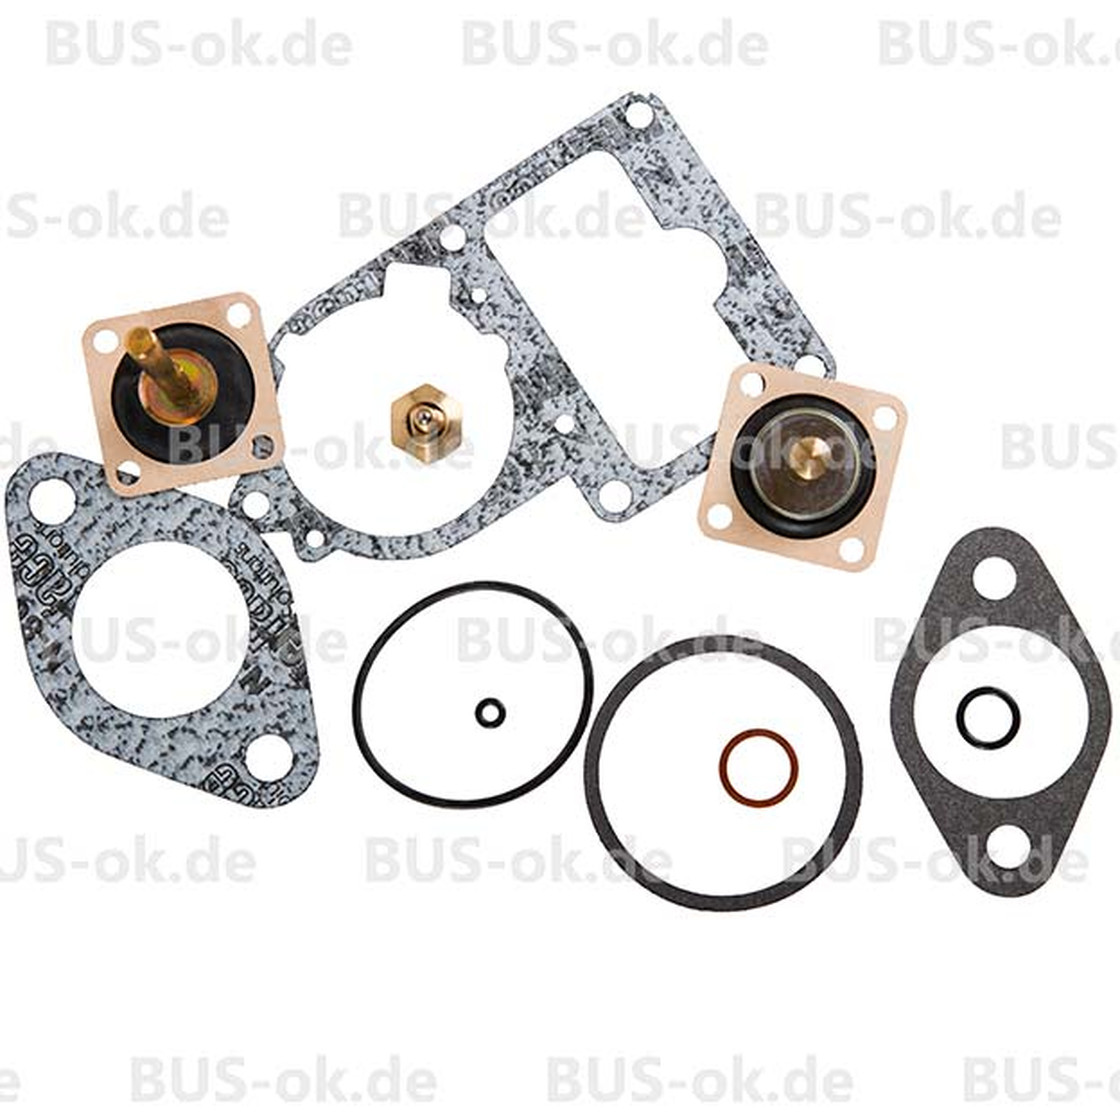 T25 Carb Rebuilt Kit For Solex 34 Pict-5 Carb